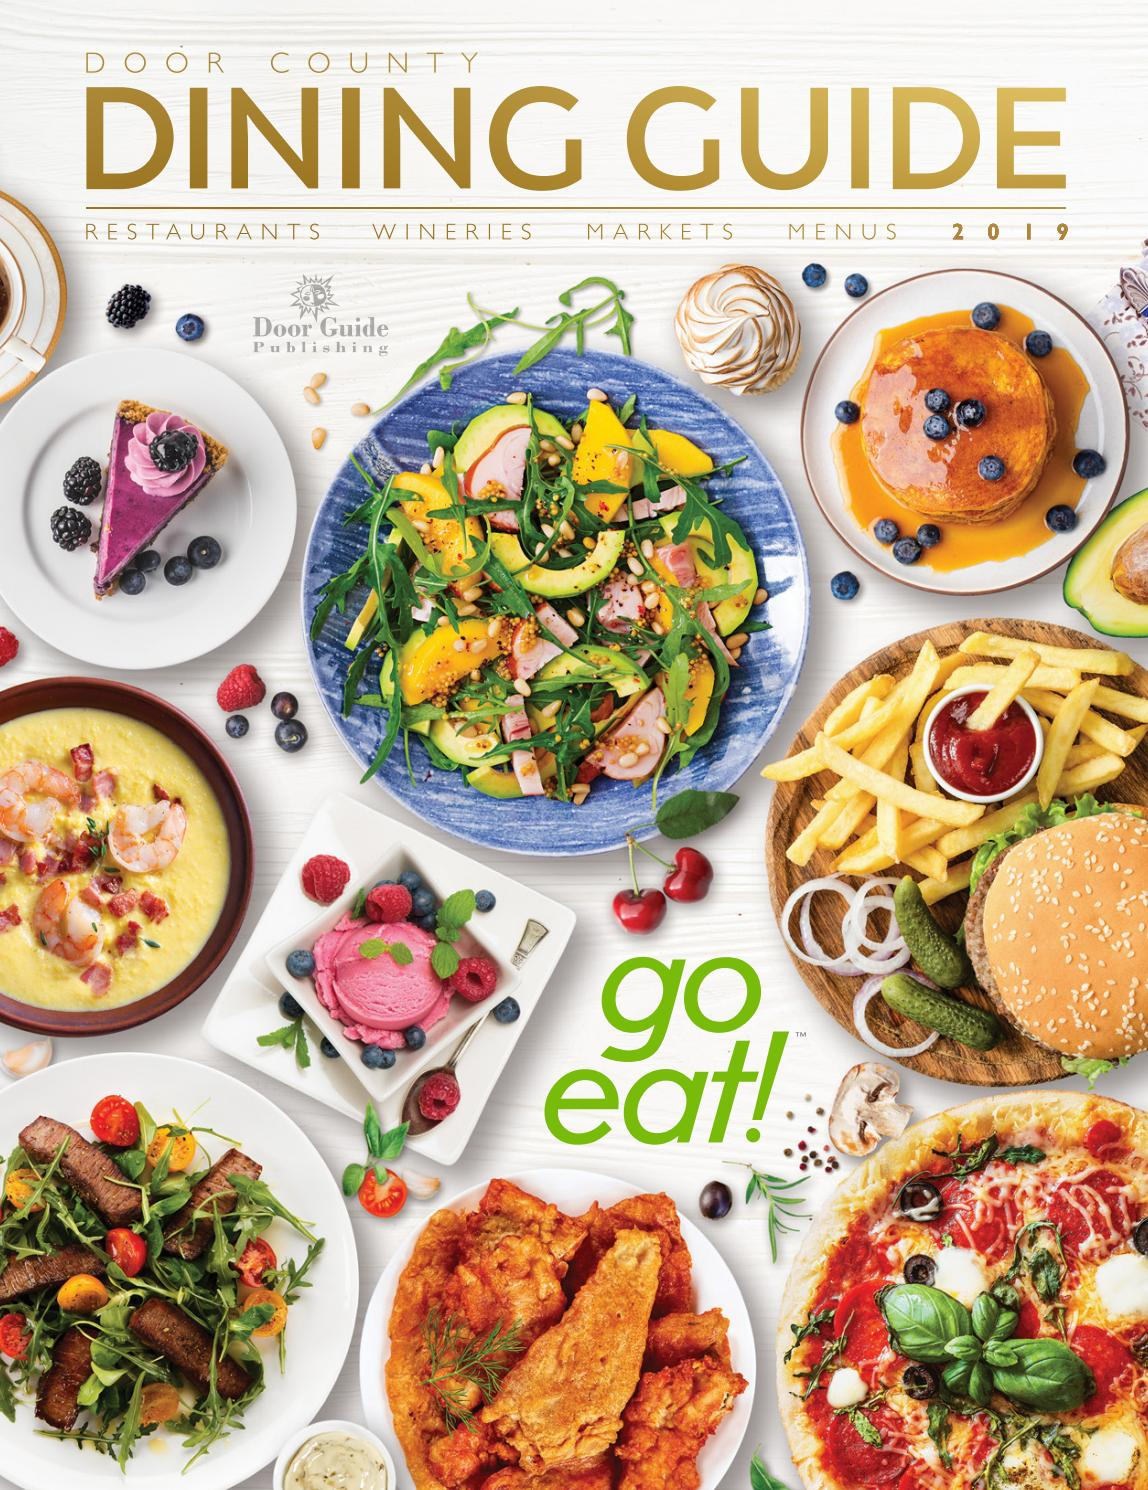 Angela Dip Nua 2019 door county dining guidedoor guide publishing - issuu